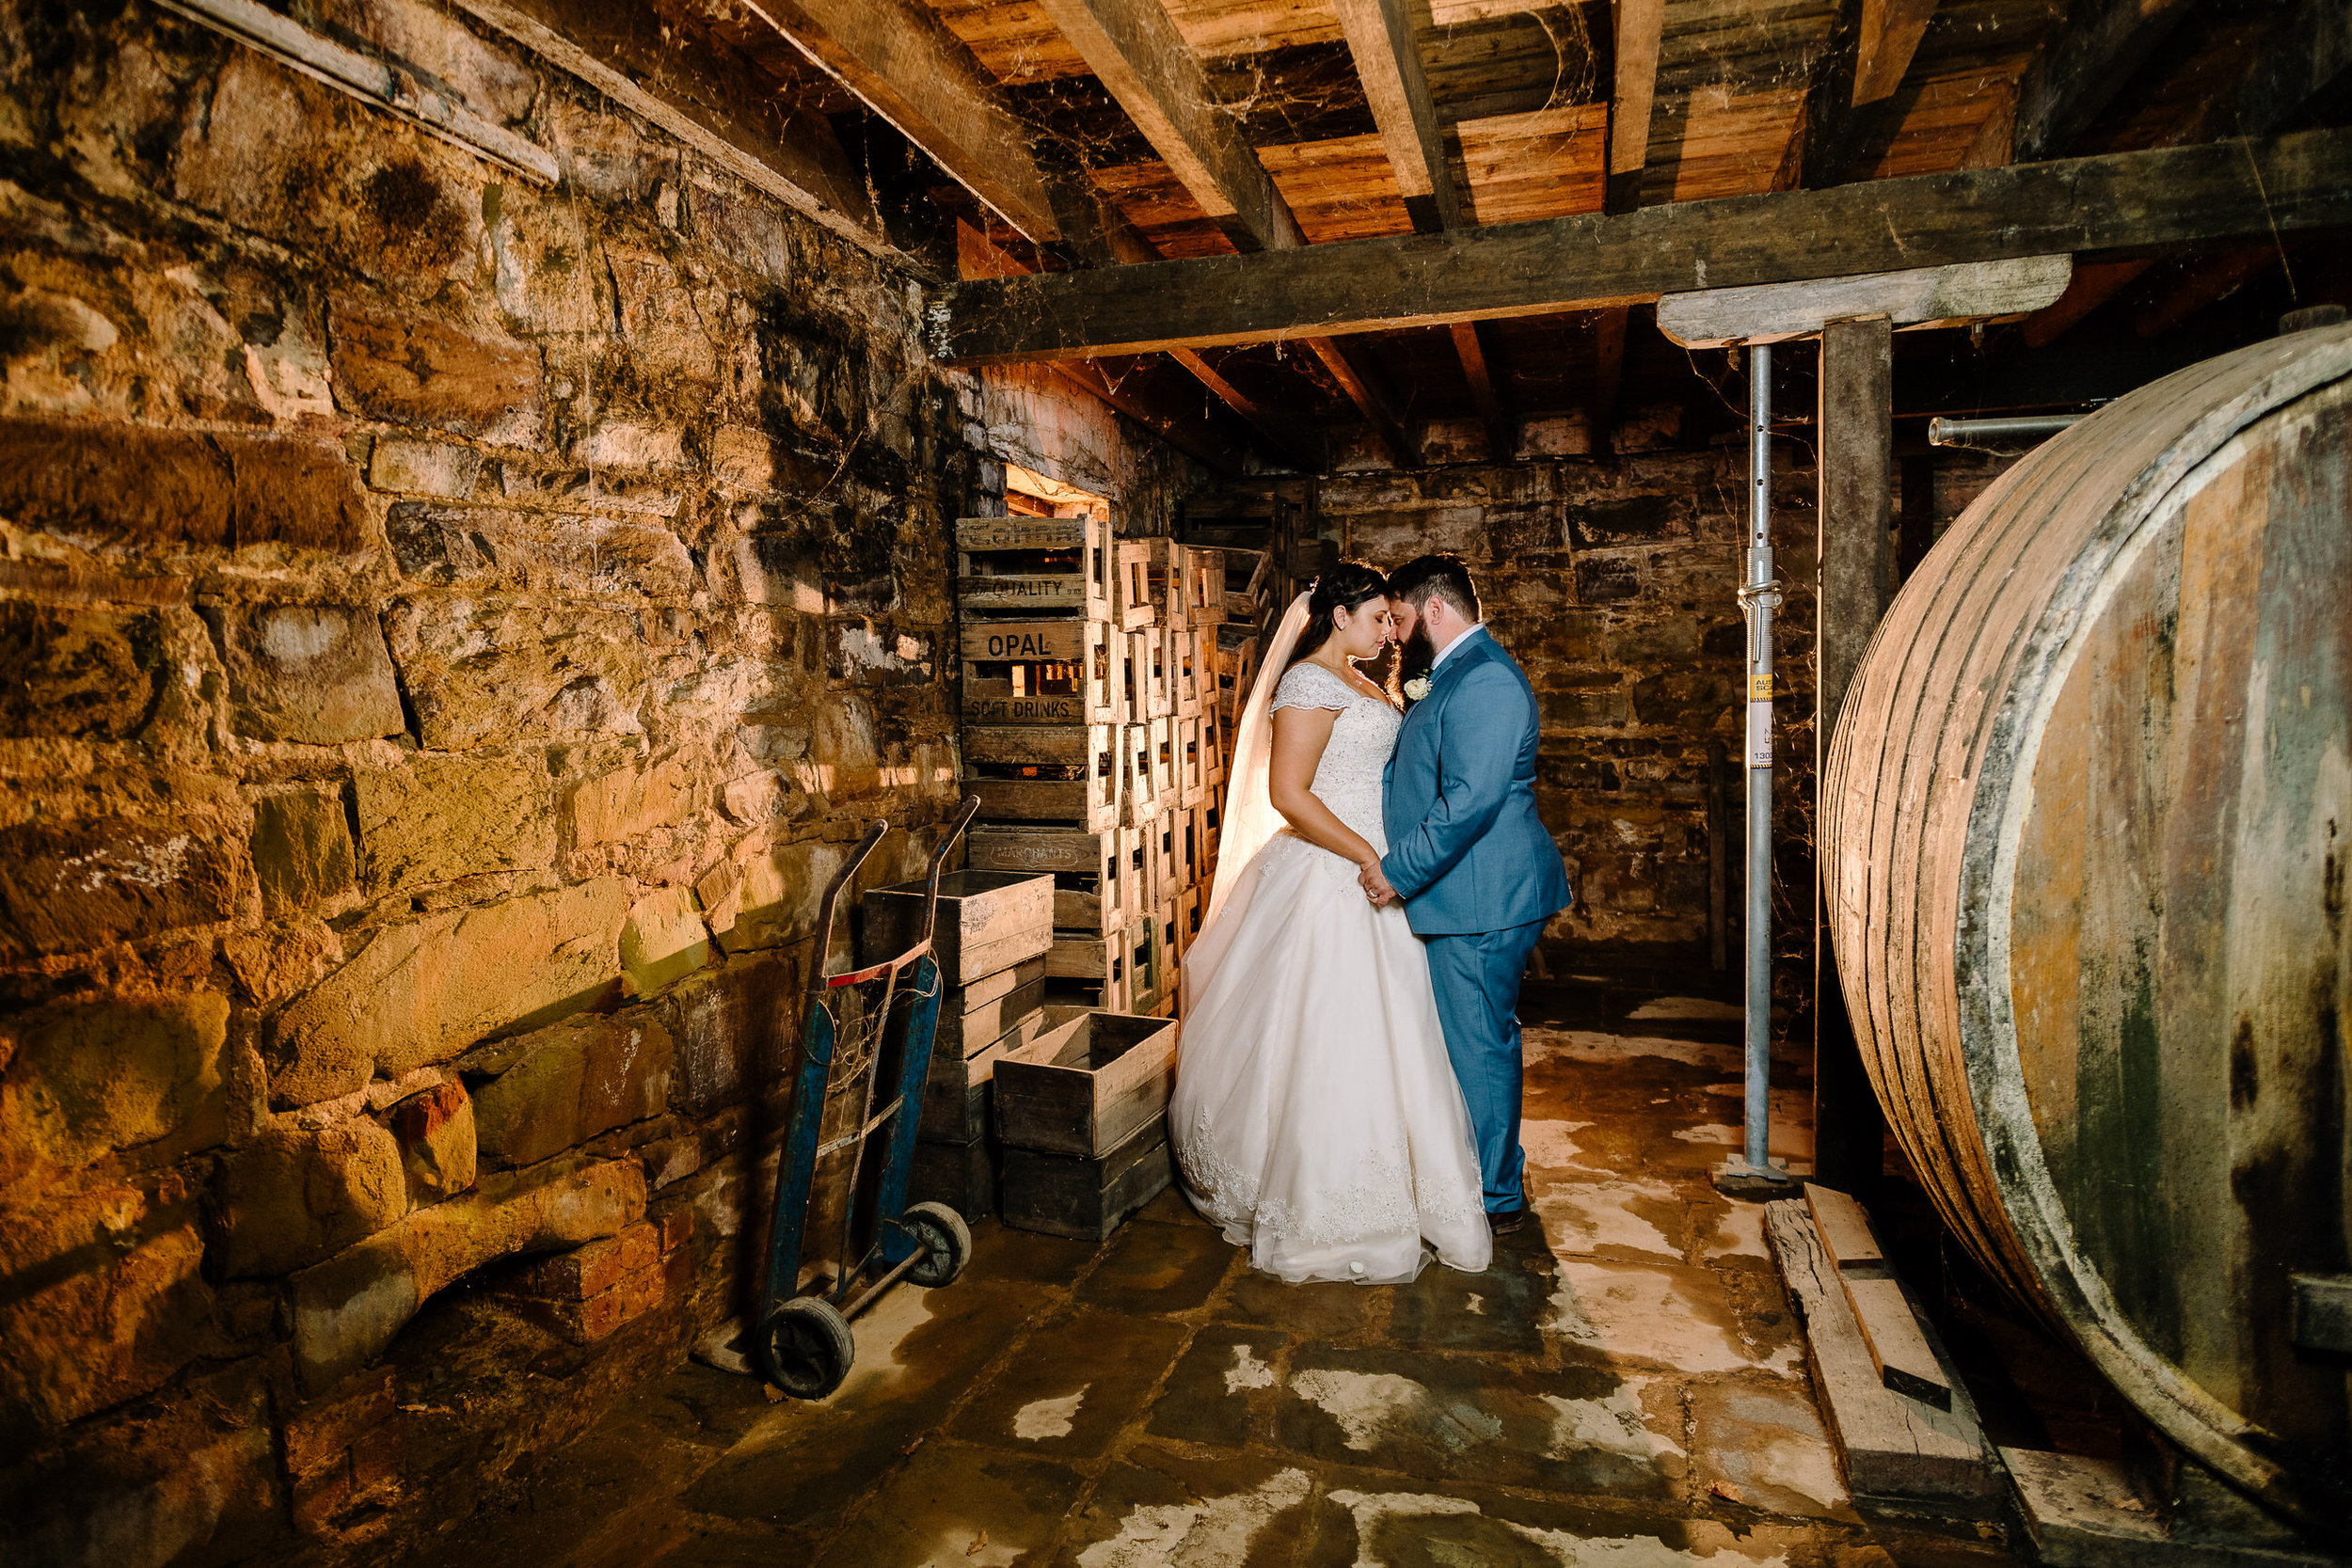 Chateau_Dore_Wedding_Photography_Justin_and_Jim-263.JPG